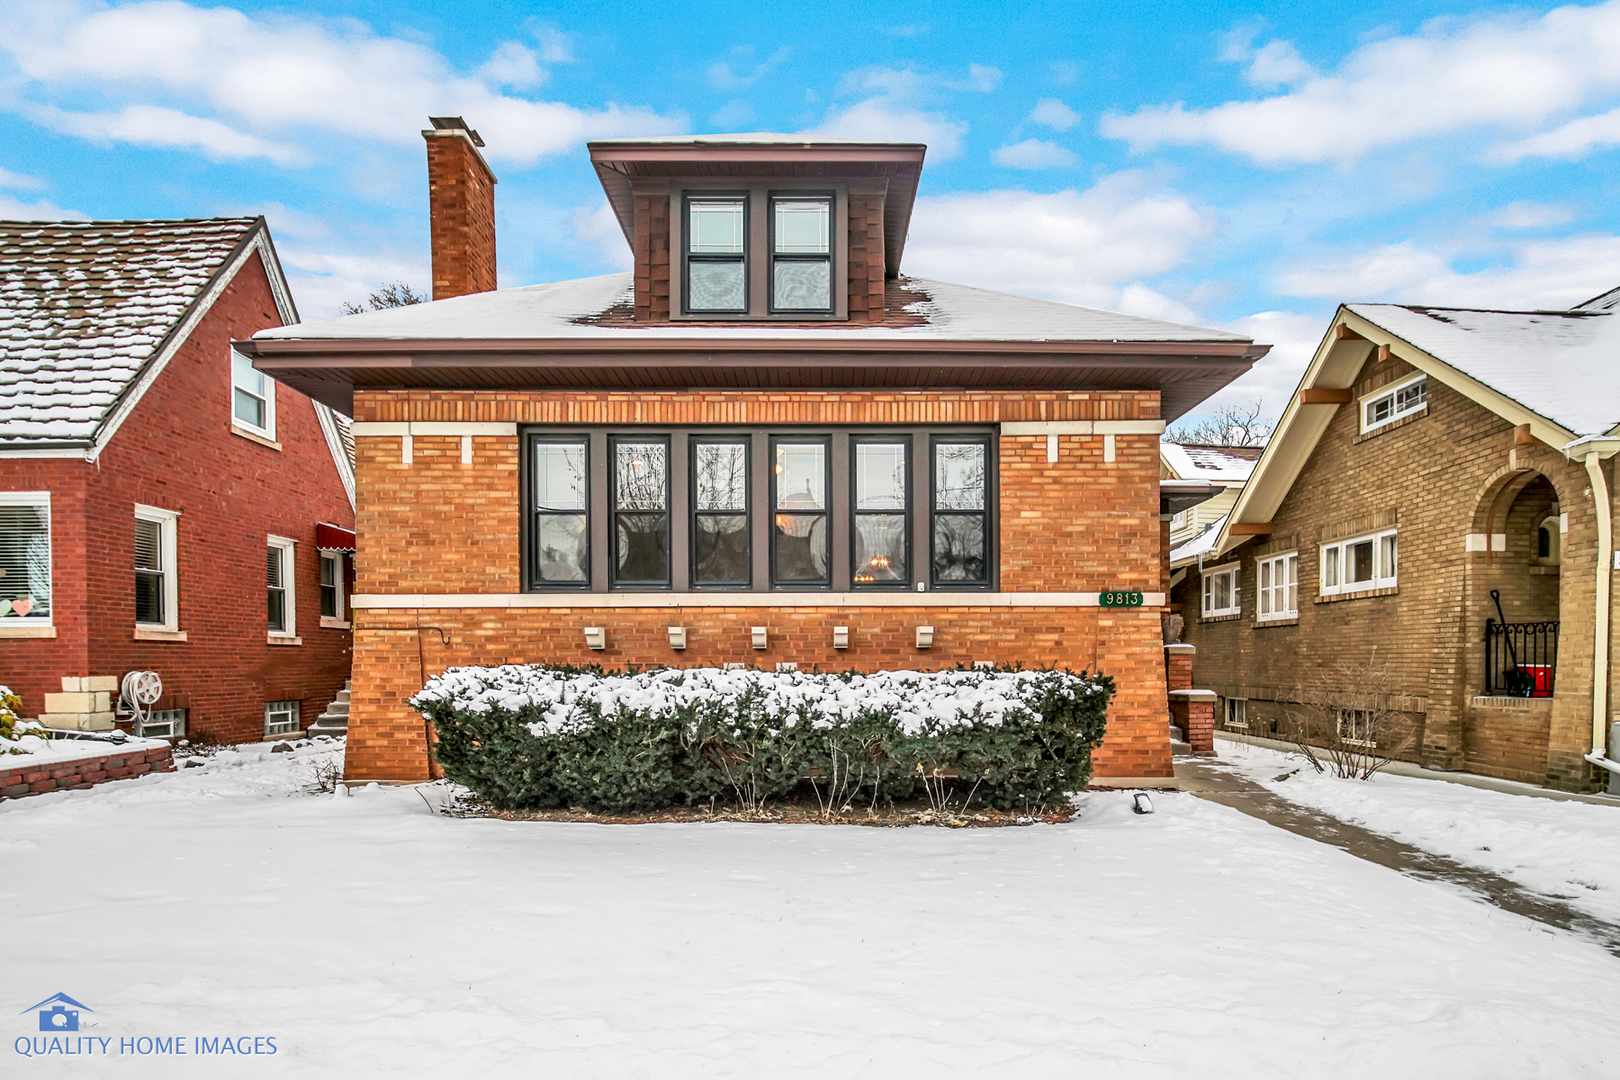 9813 South Hoyne Avenue, Beverly-Chicago in Cook County, IL 60643 Home for Sale